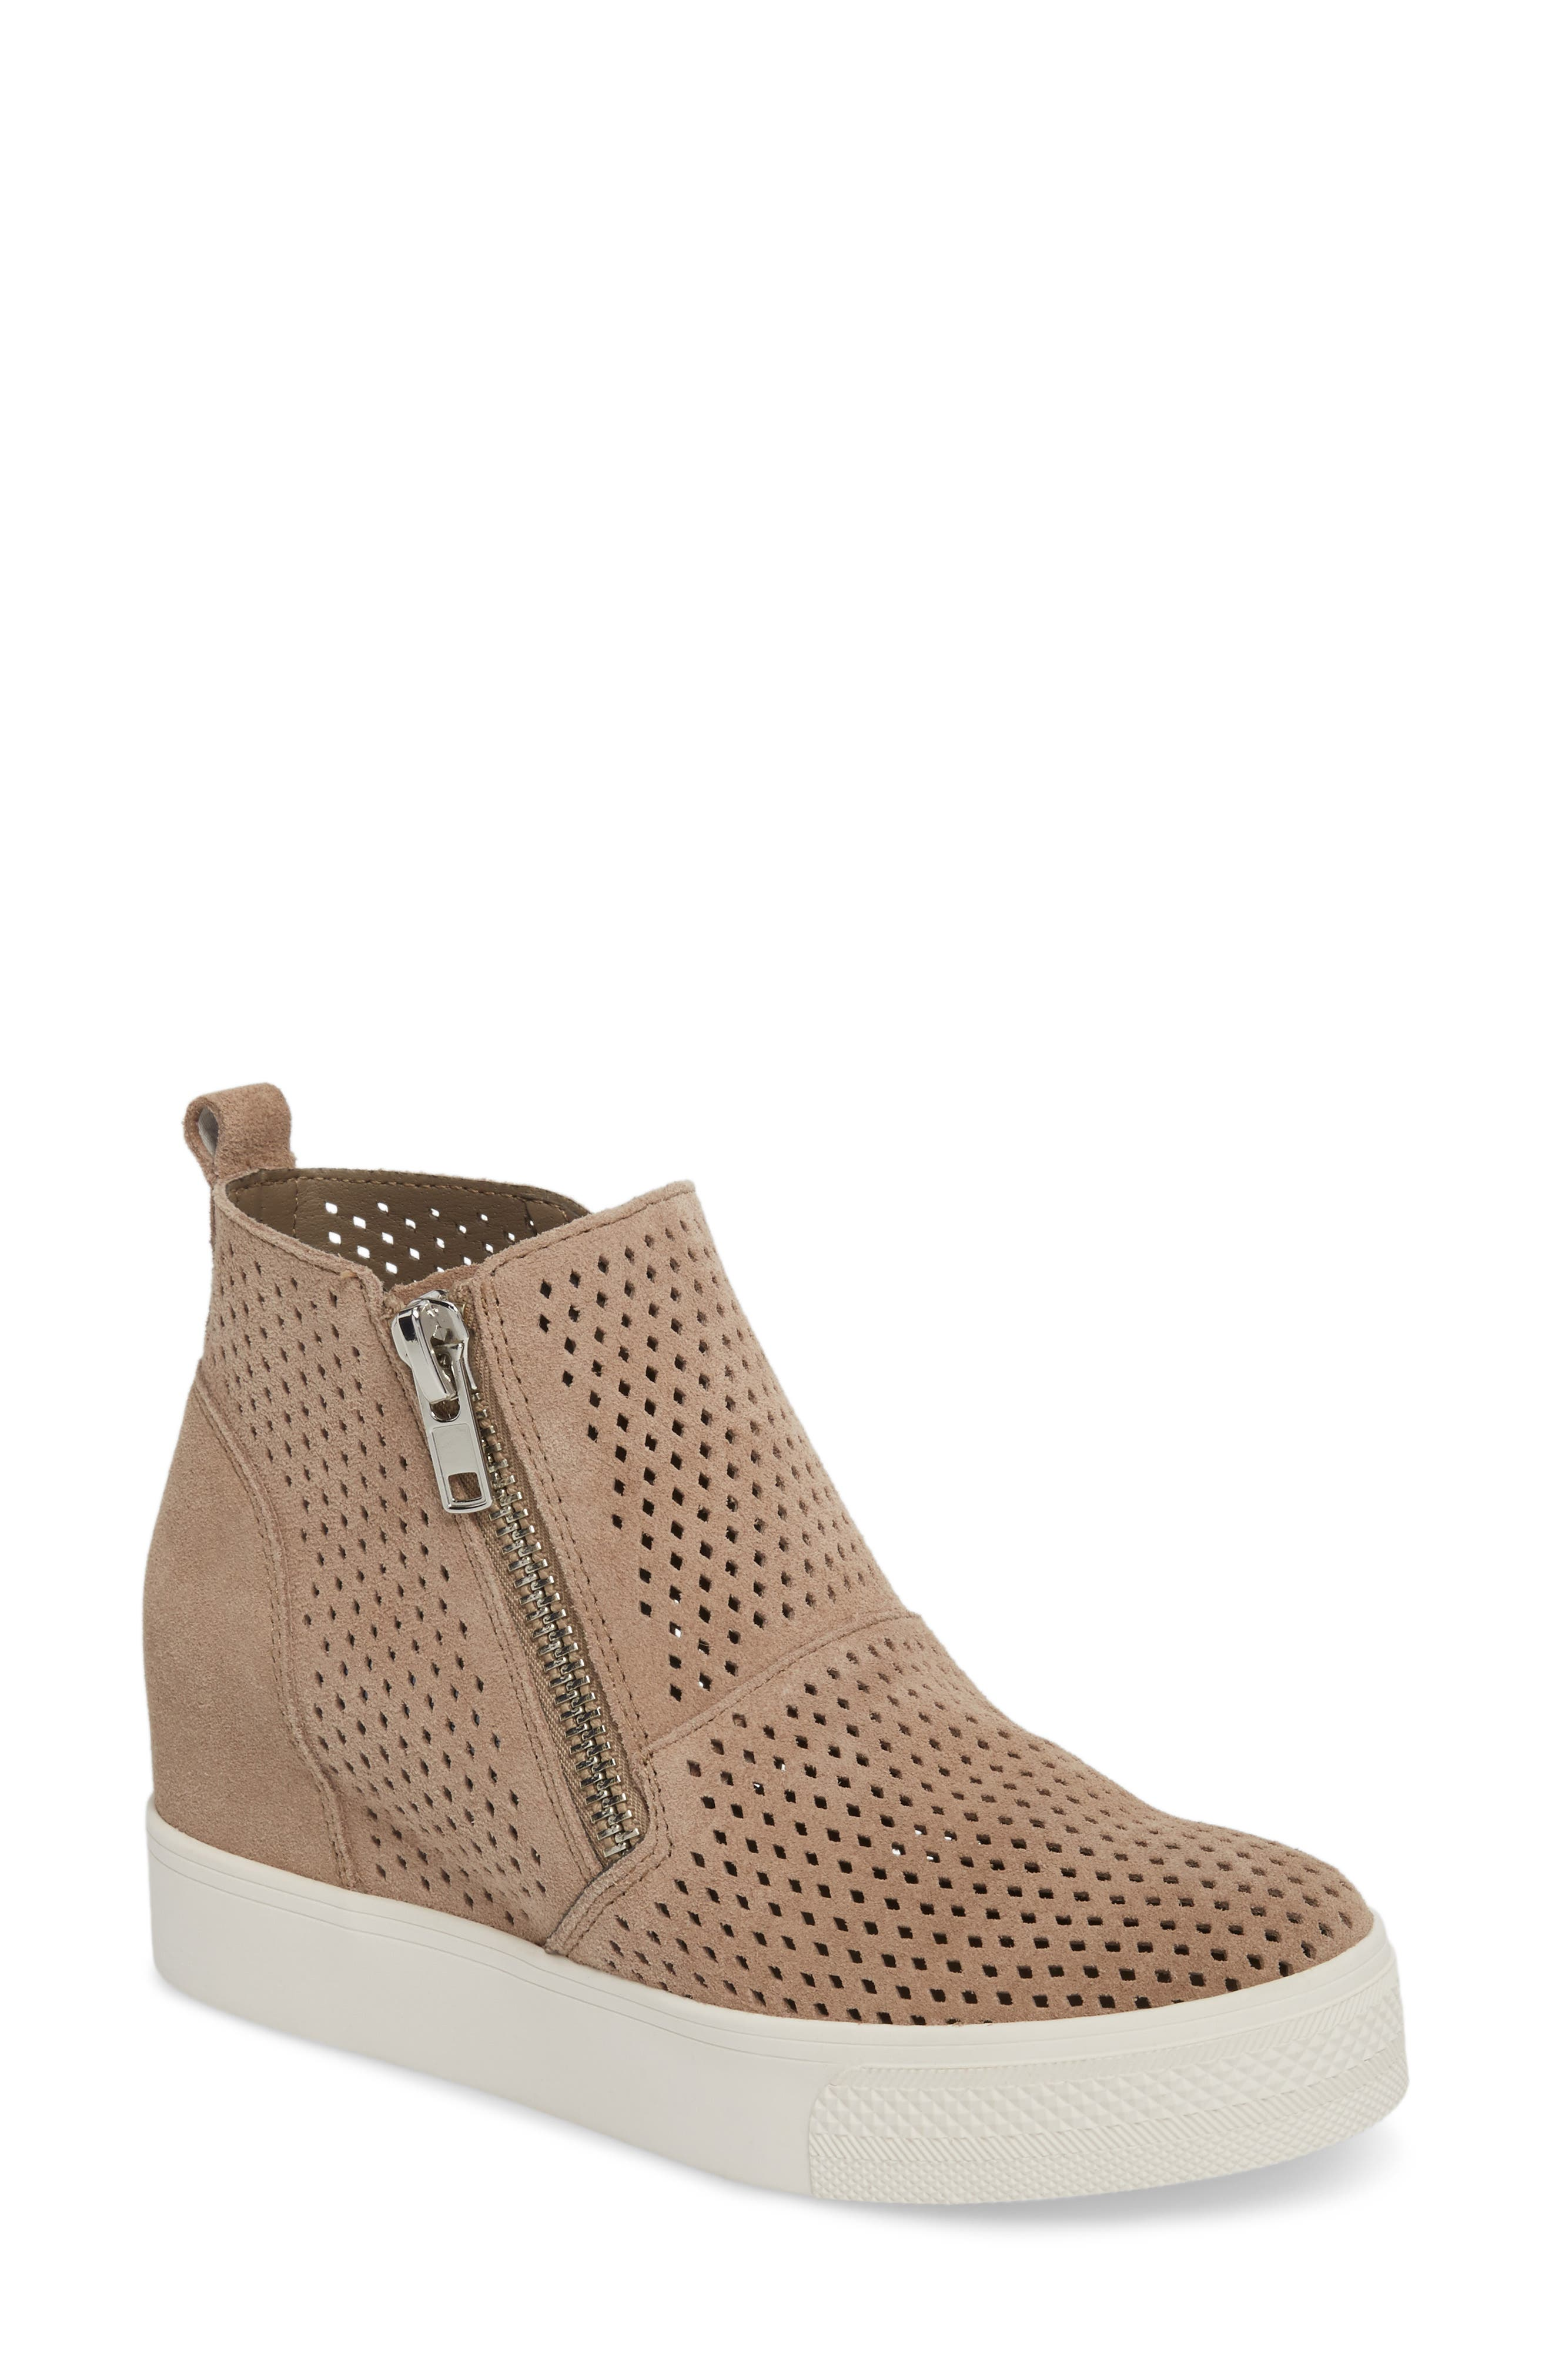 Wedgie High Top Platform Sneaker, Taupe